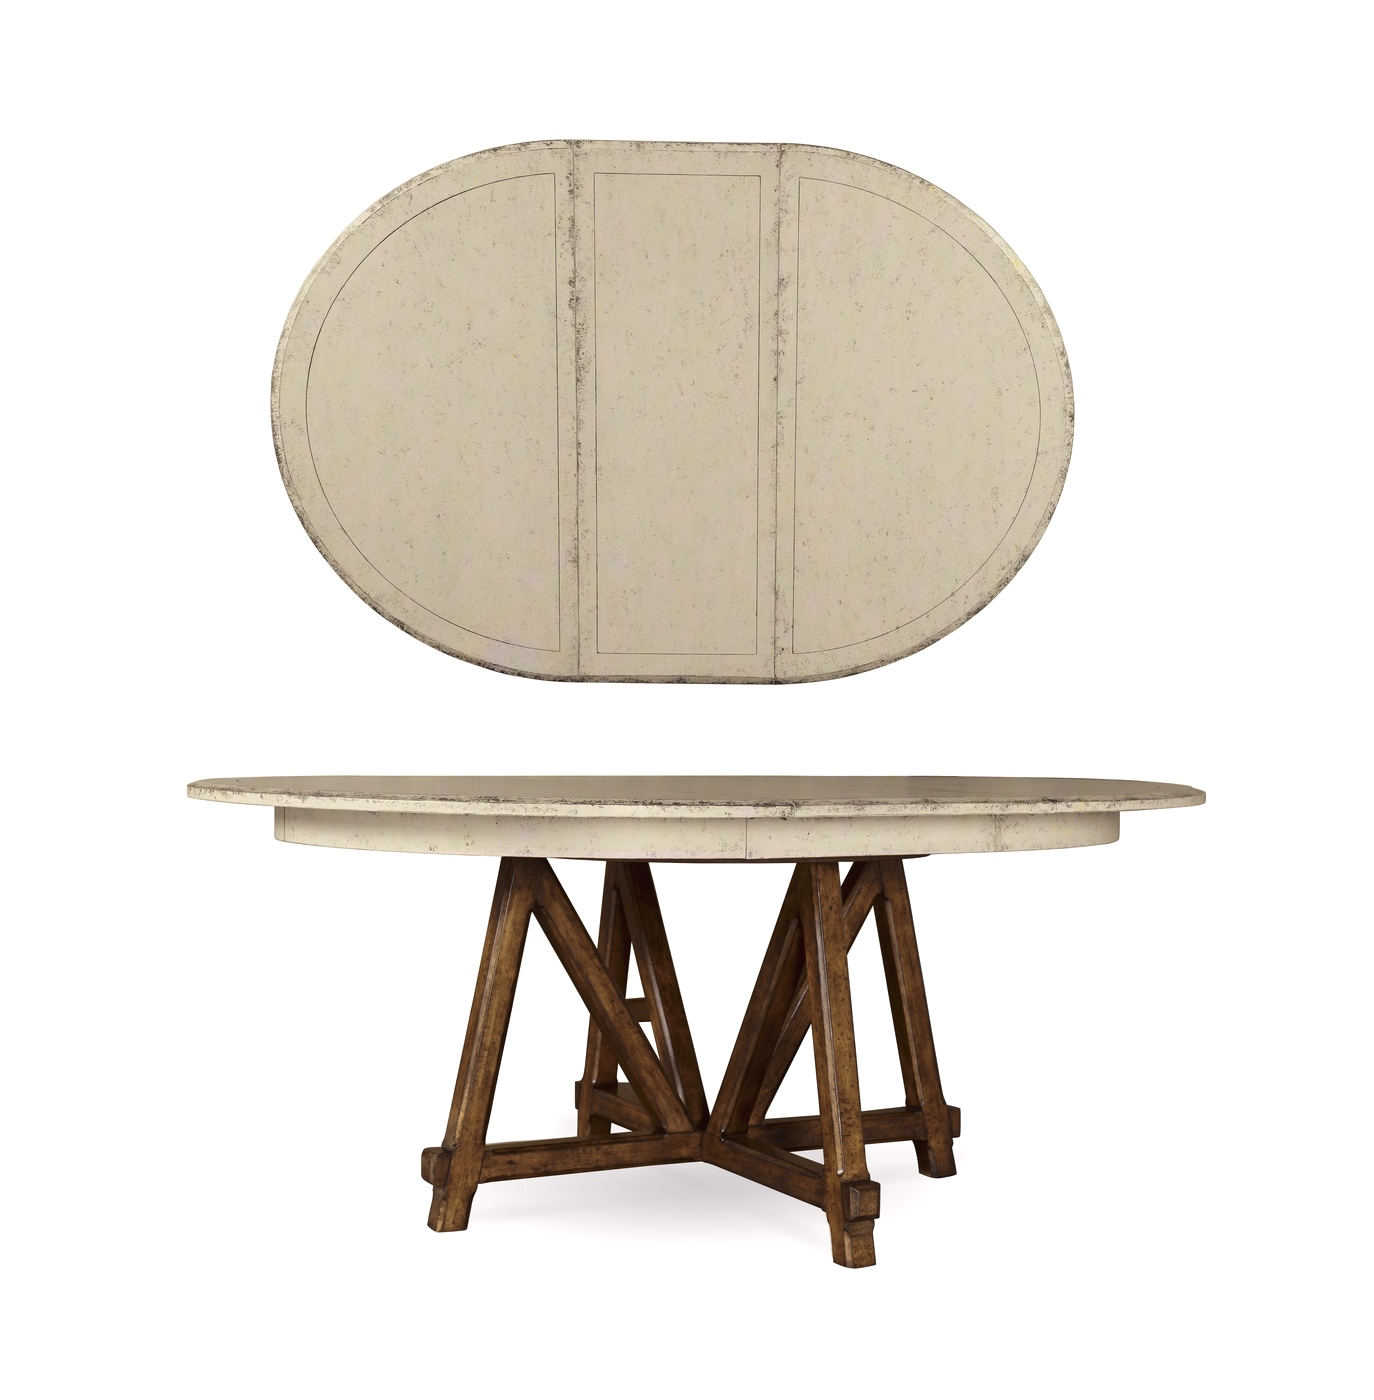 echo park birch round dining table in antique white. Black Bedroom Furniture Sets. Home Design Ideas